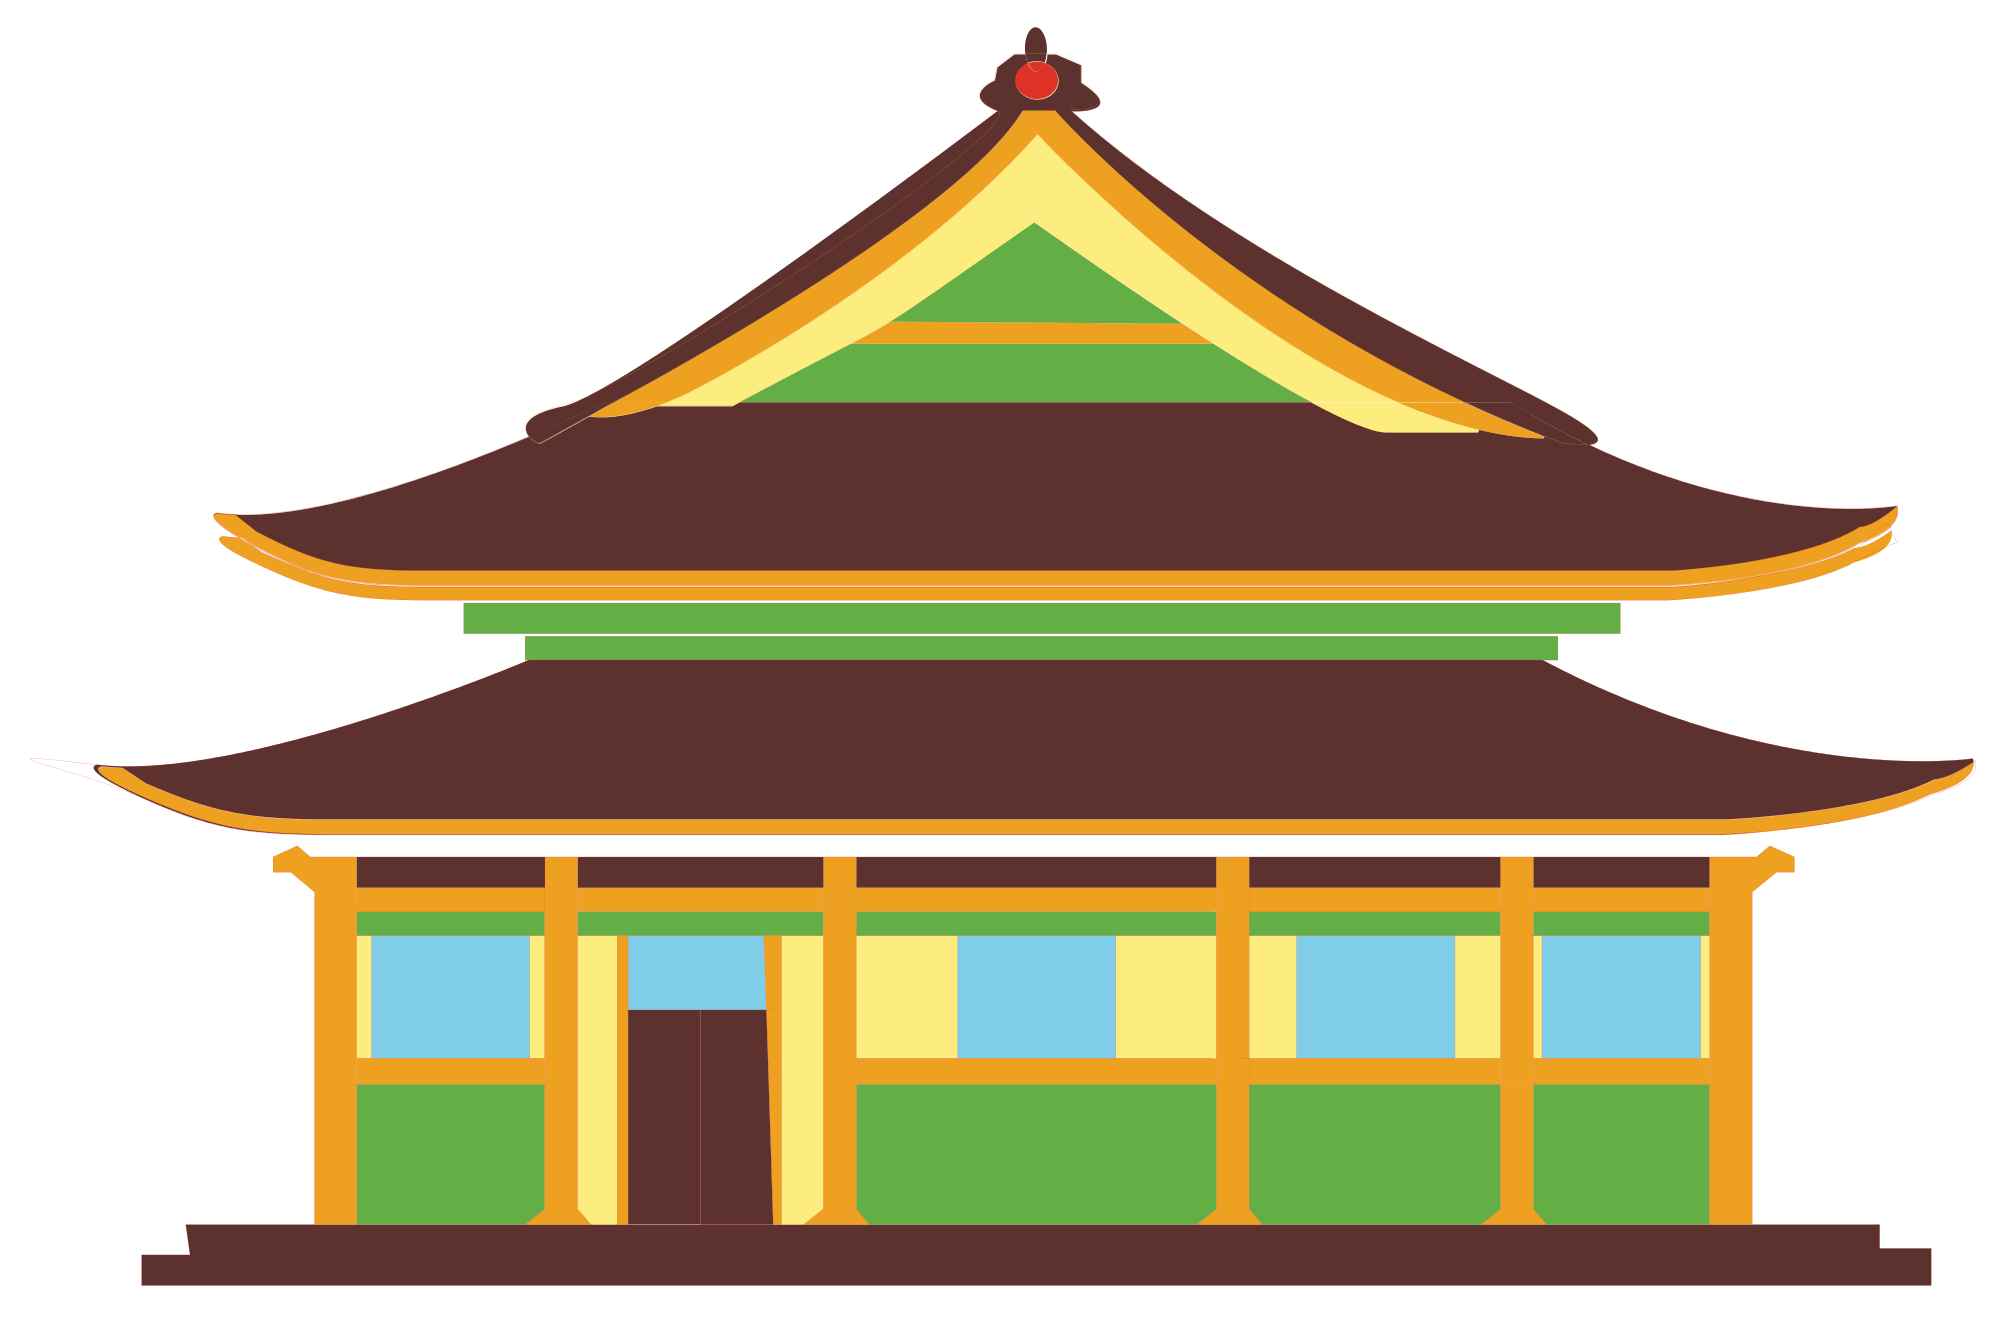 House pencil free on. Palace clipart oriental